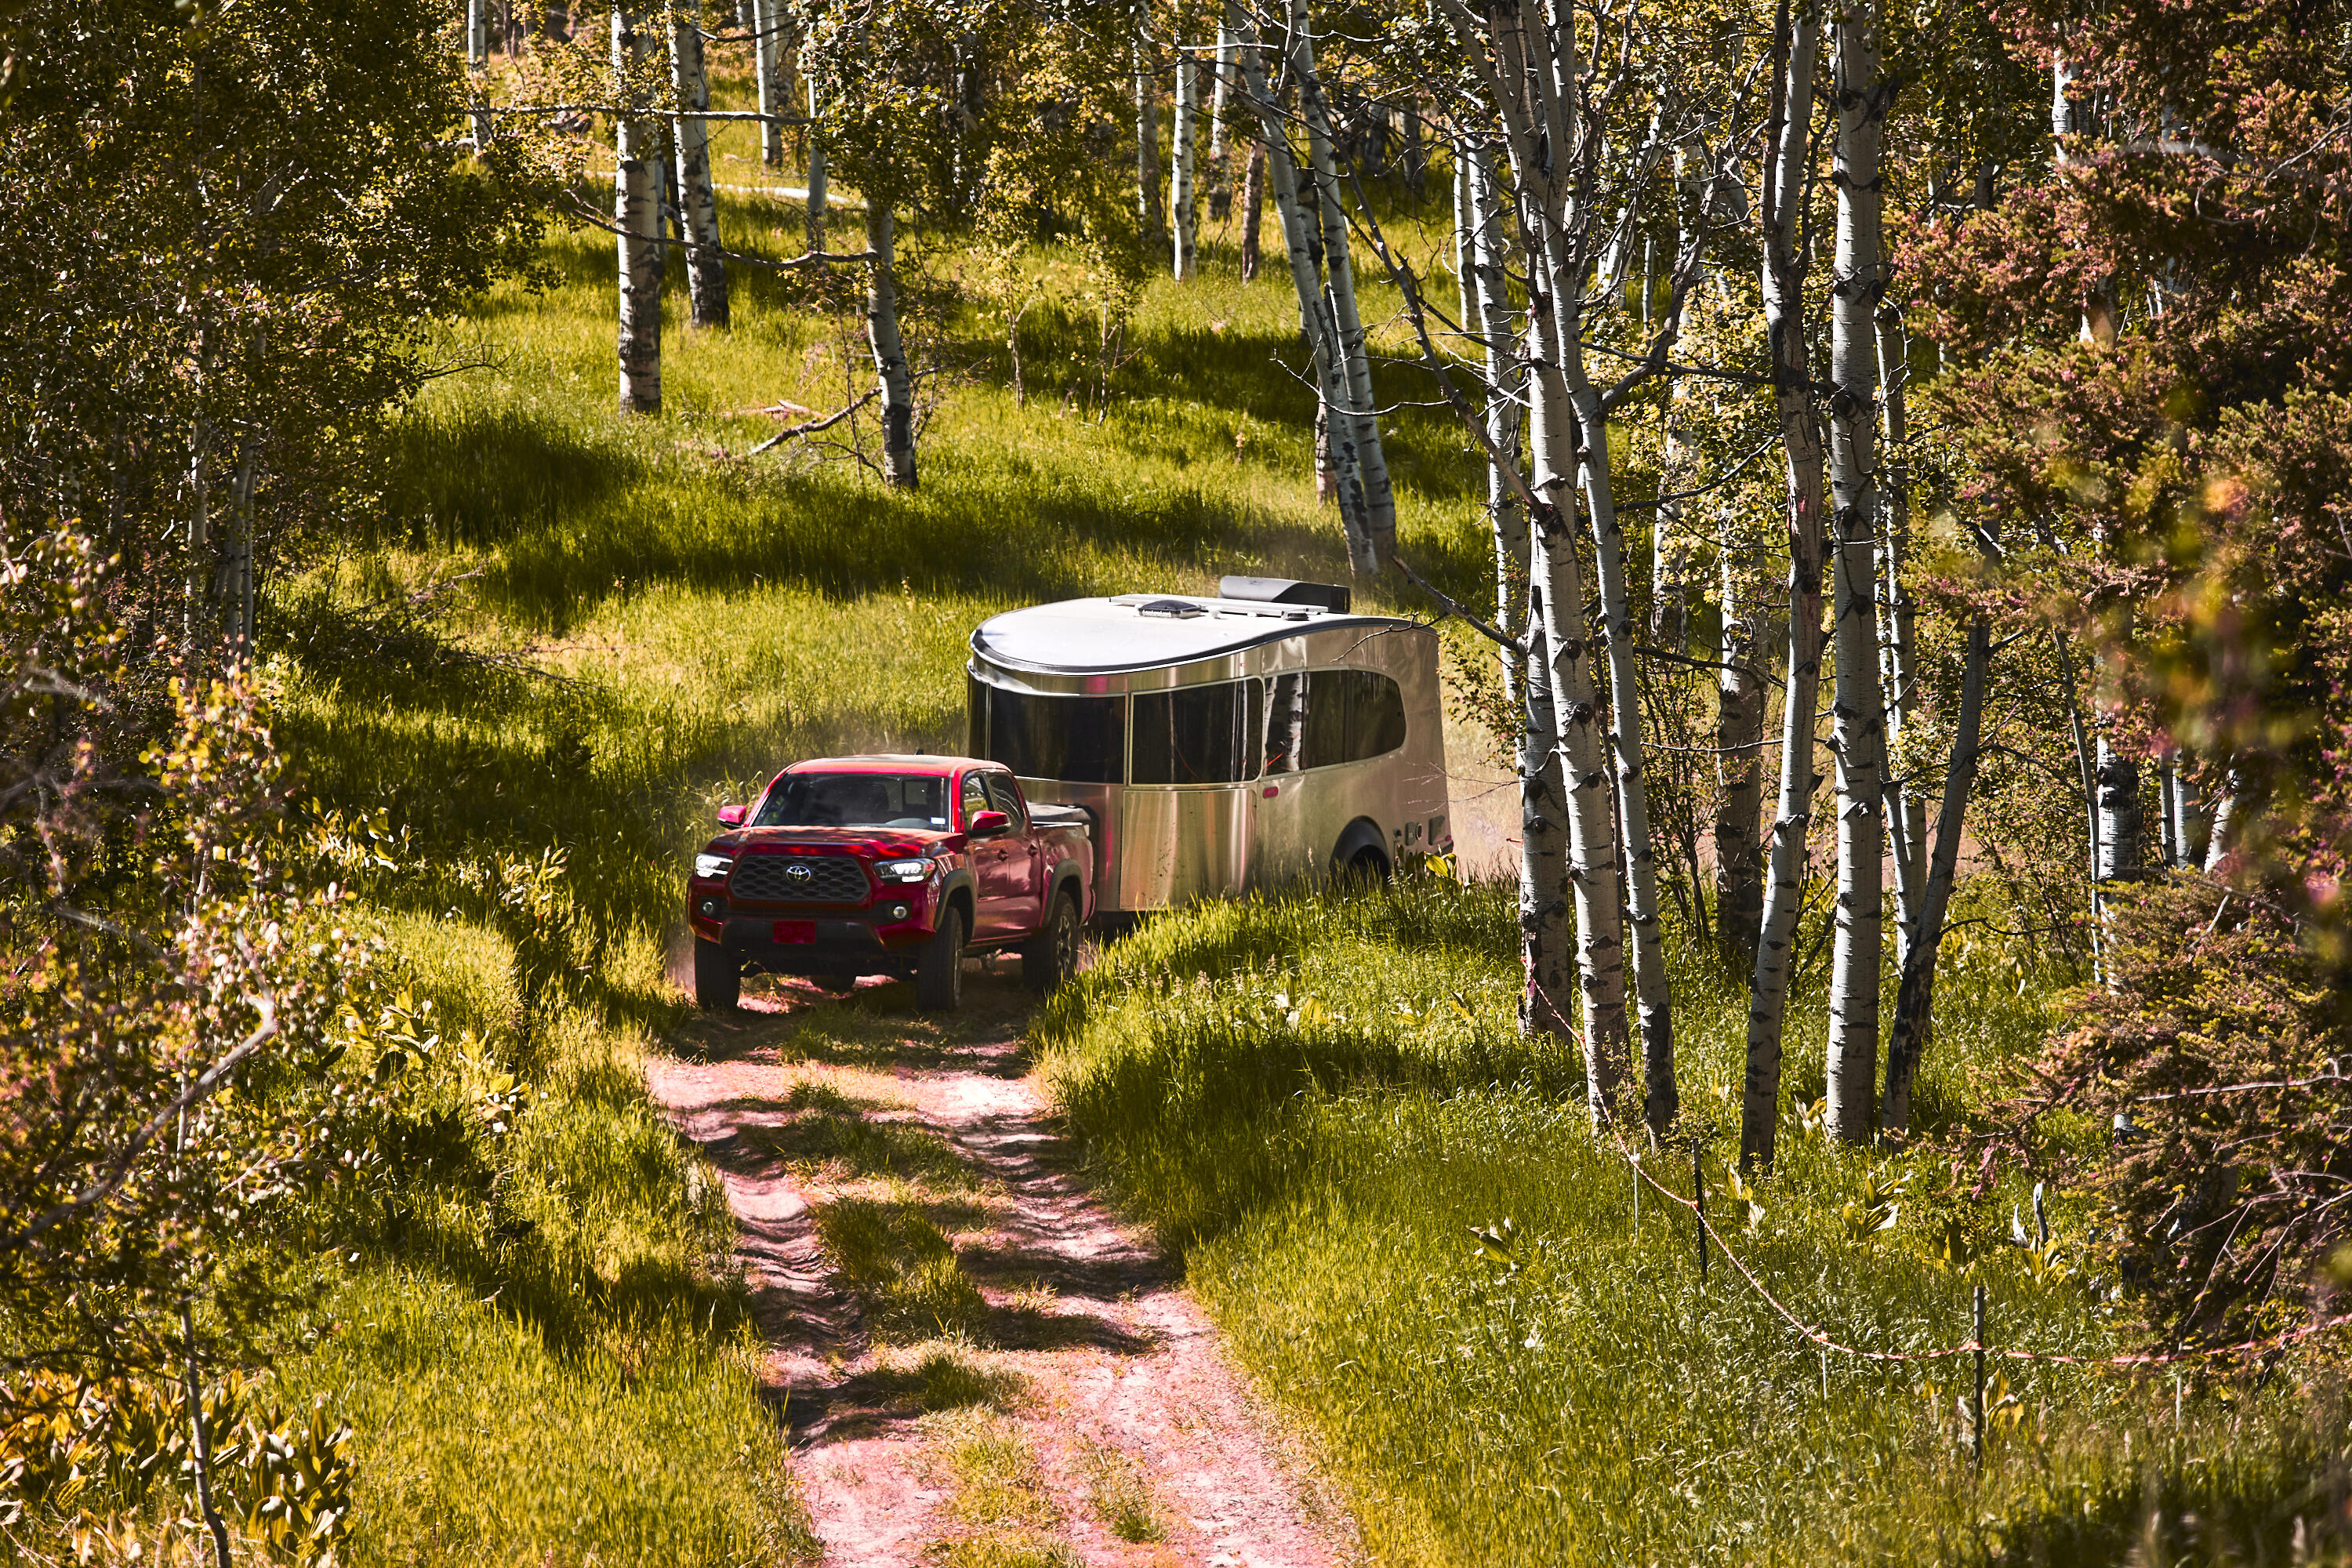 20-06-20-airstream-steamboat-dl-3093